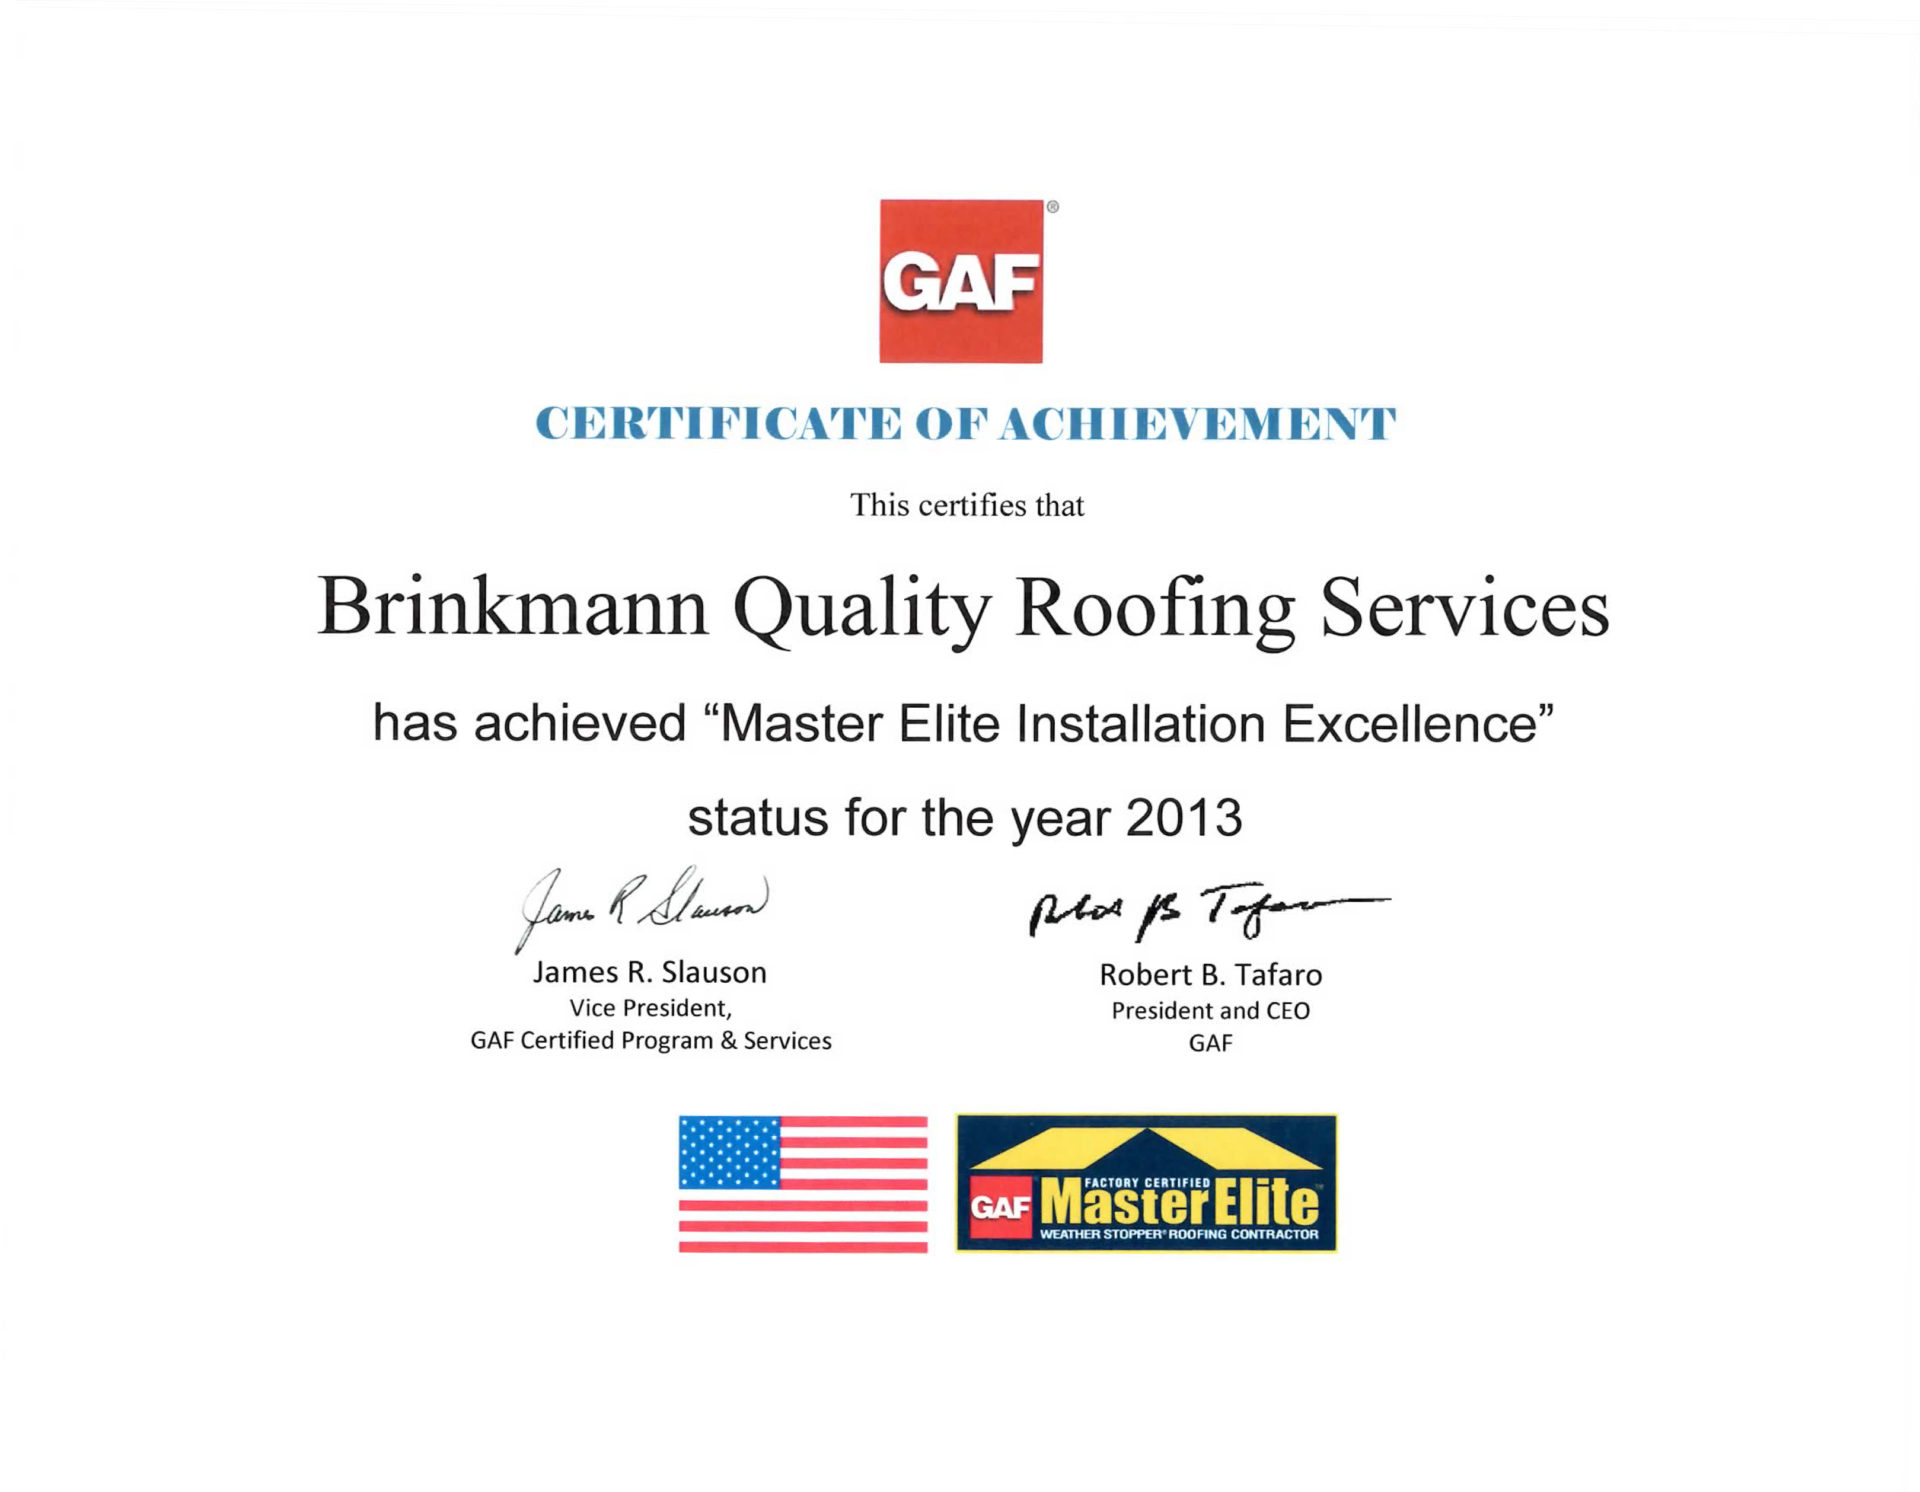 Master Elite Installation Excellence